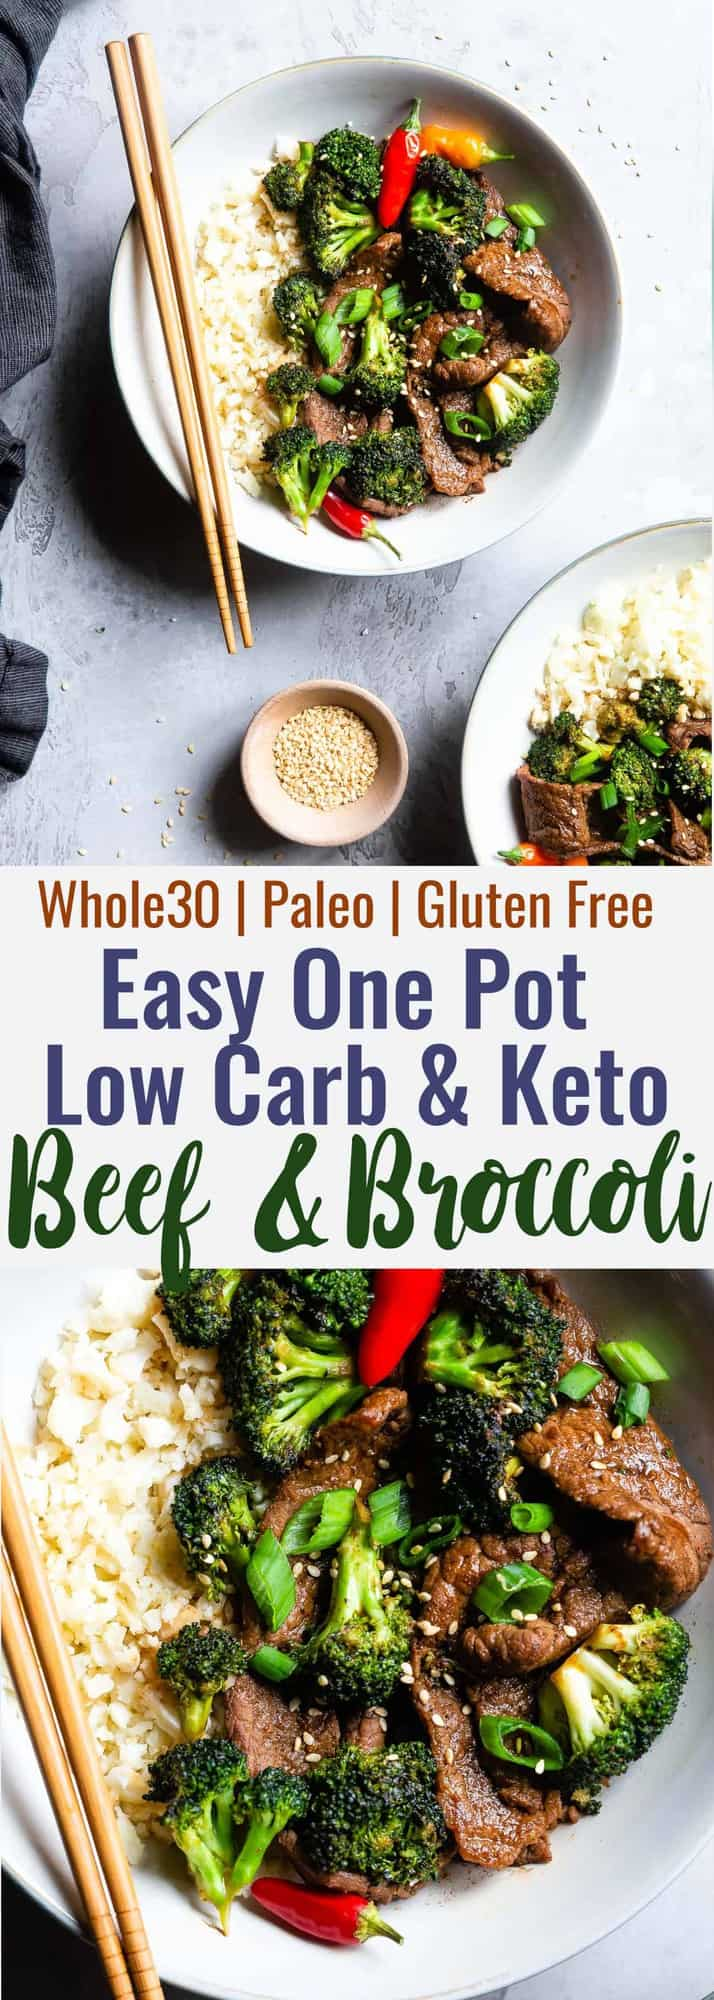 Keto Beef and Broccoli collage photo